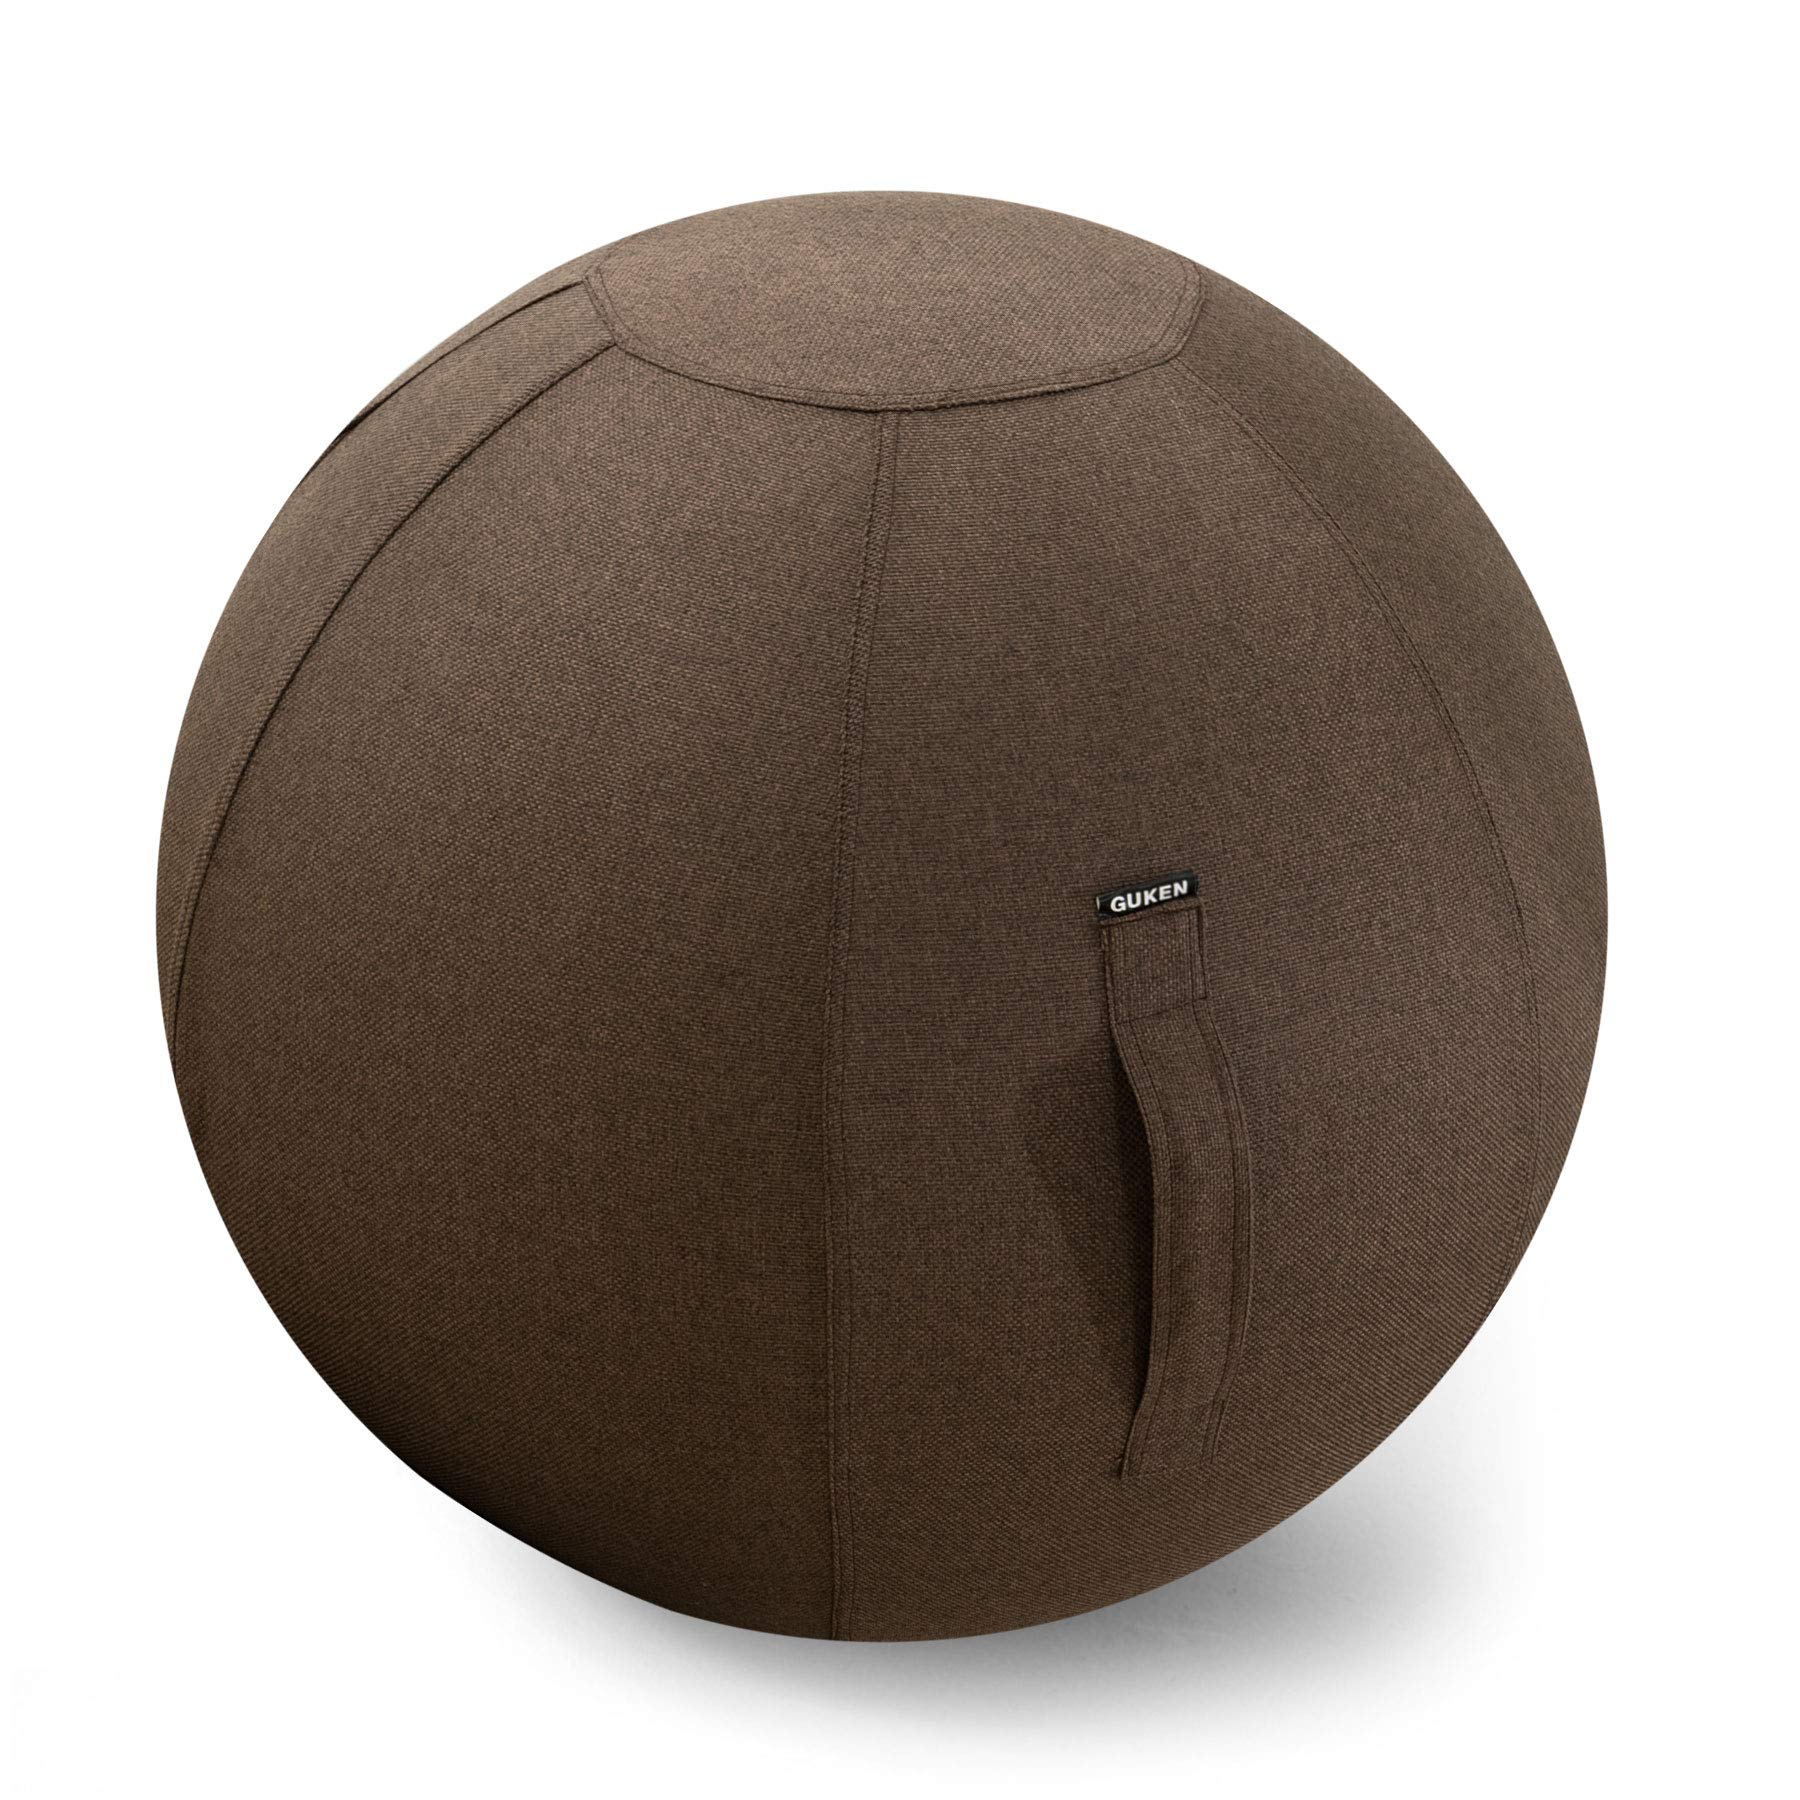 Guken Yoga Ball Cover, Sitting Ball Chair for Office and Home, Lightweight Self-Standing Ergonomic Posture Activating Exercise Ball Solution with Handle & Cover, Classroom & YogaEasy (65CM, Chocolate)